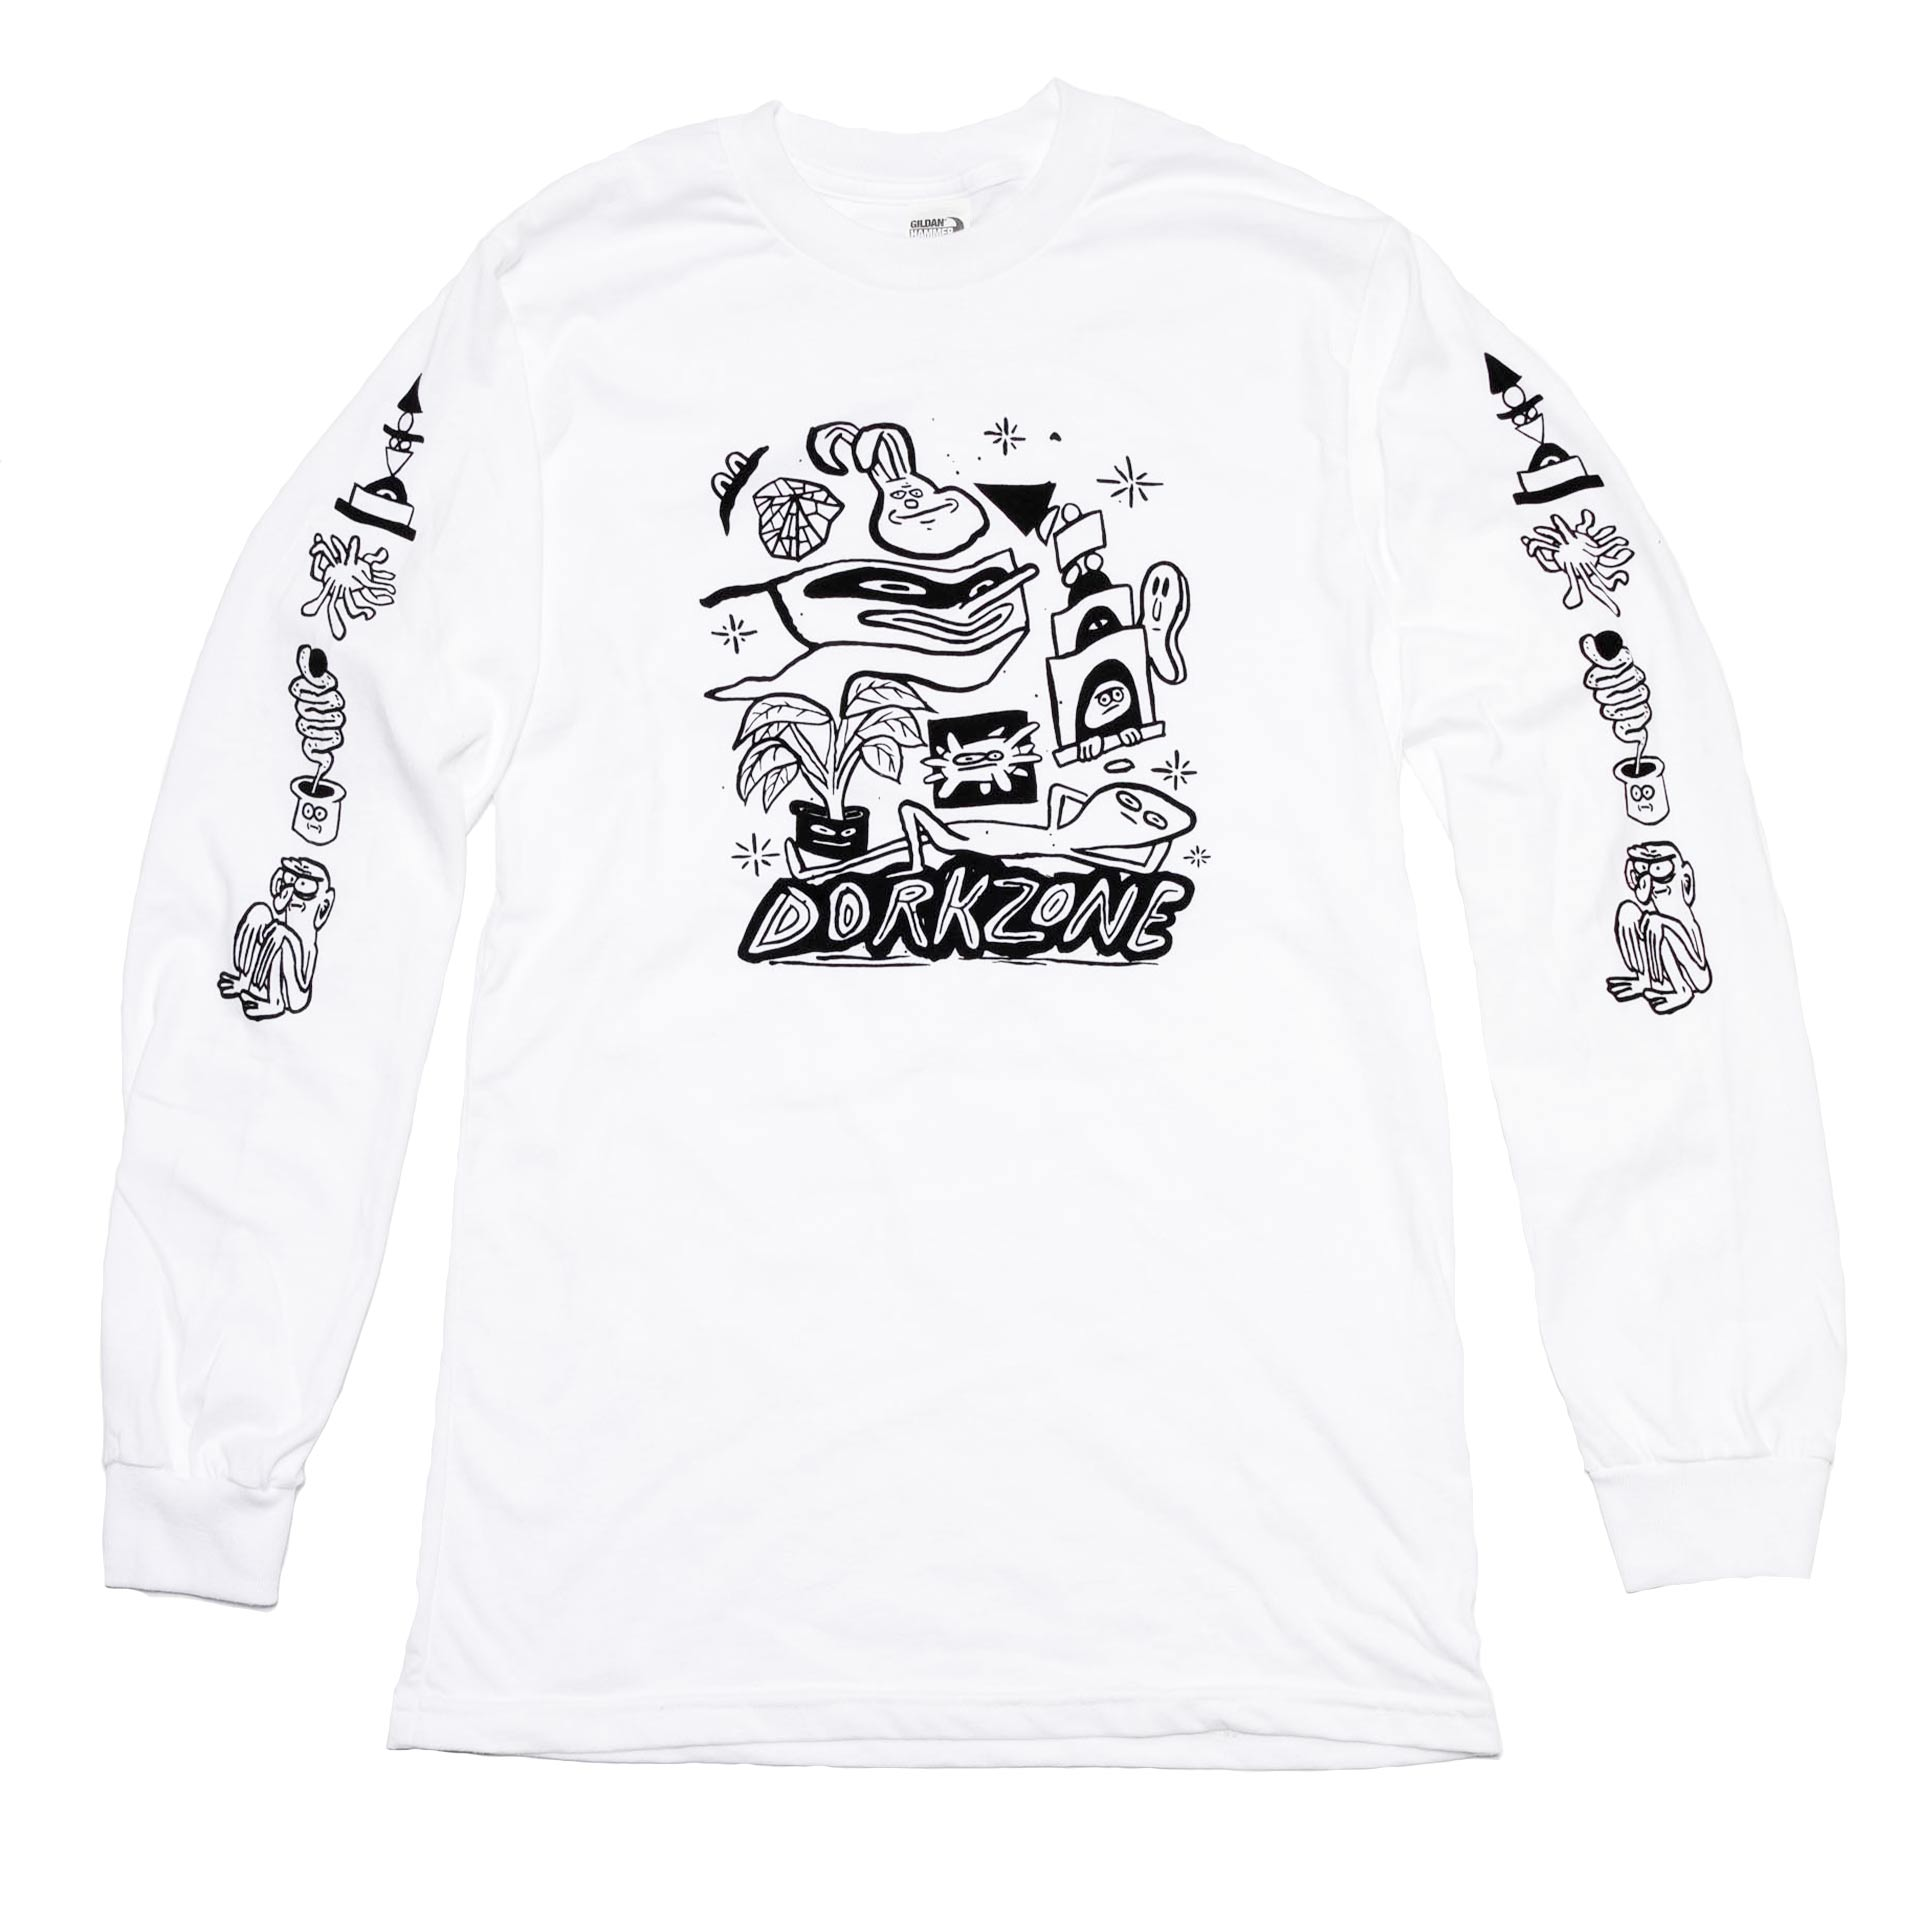 Dorkzone Black Ink Long Sleeve